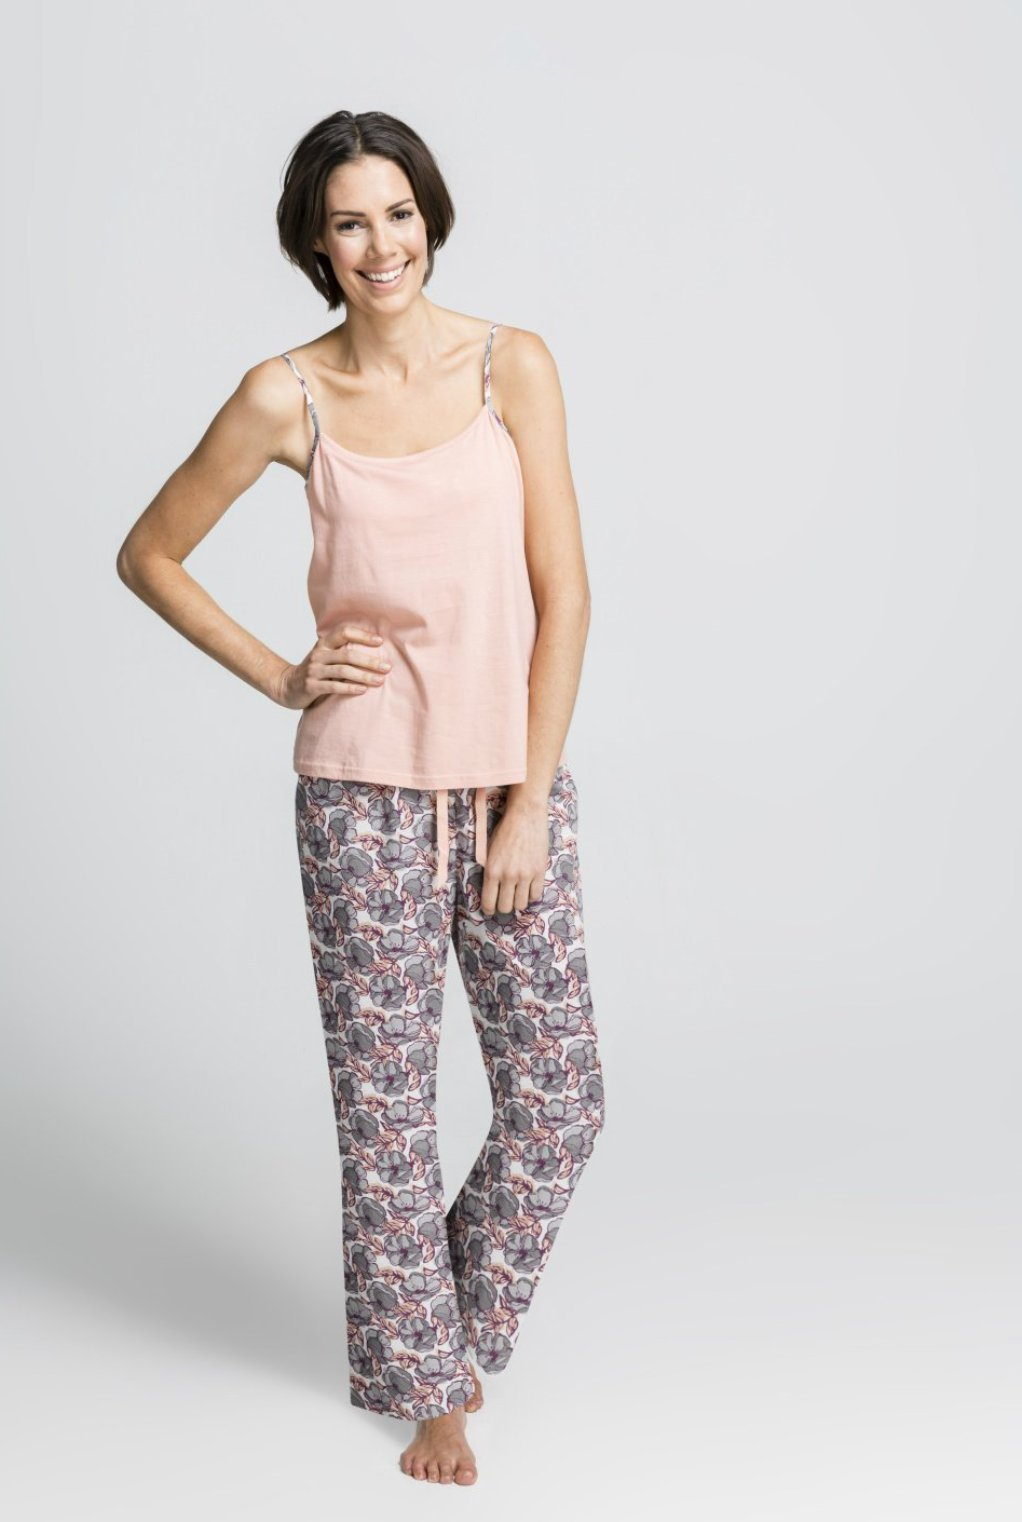 Sylvie - Organic PJ's - Strappy Singlet Top with Pants Set